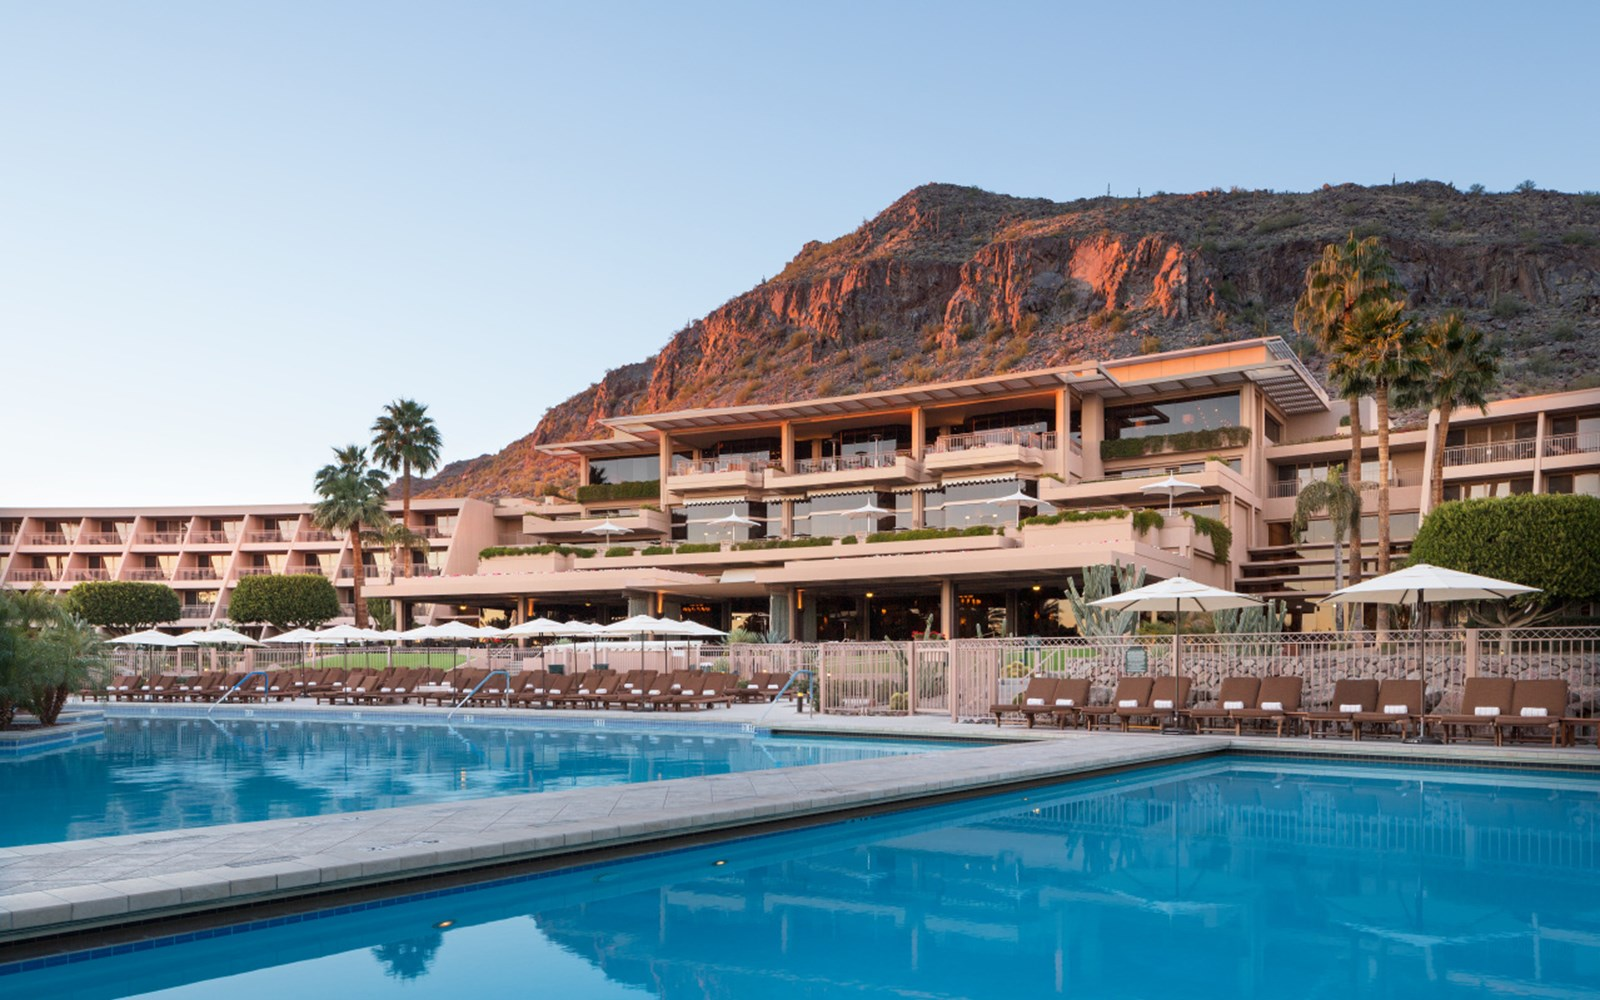 Building that tiers down to pool area with Camelback Mountain in the background